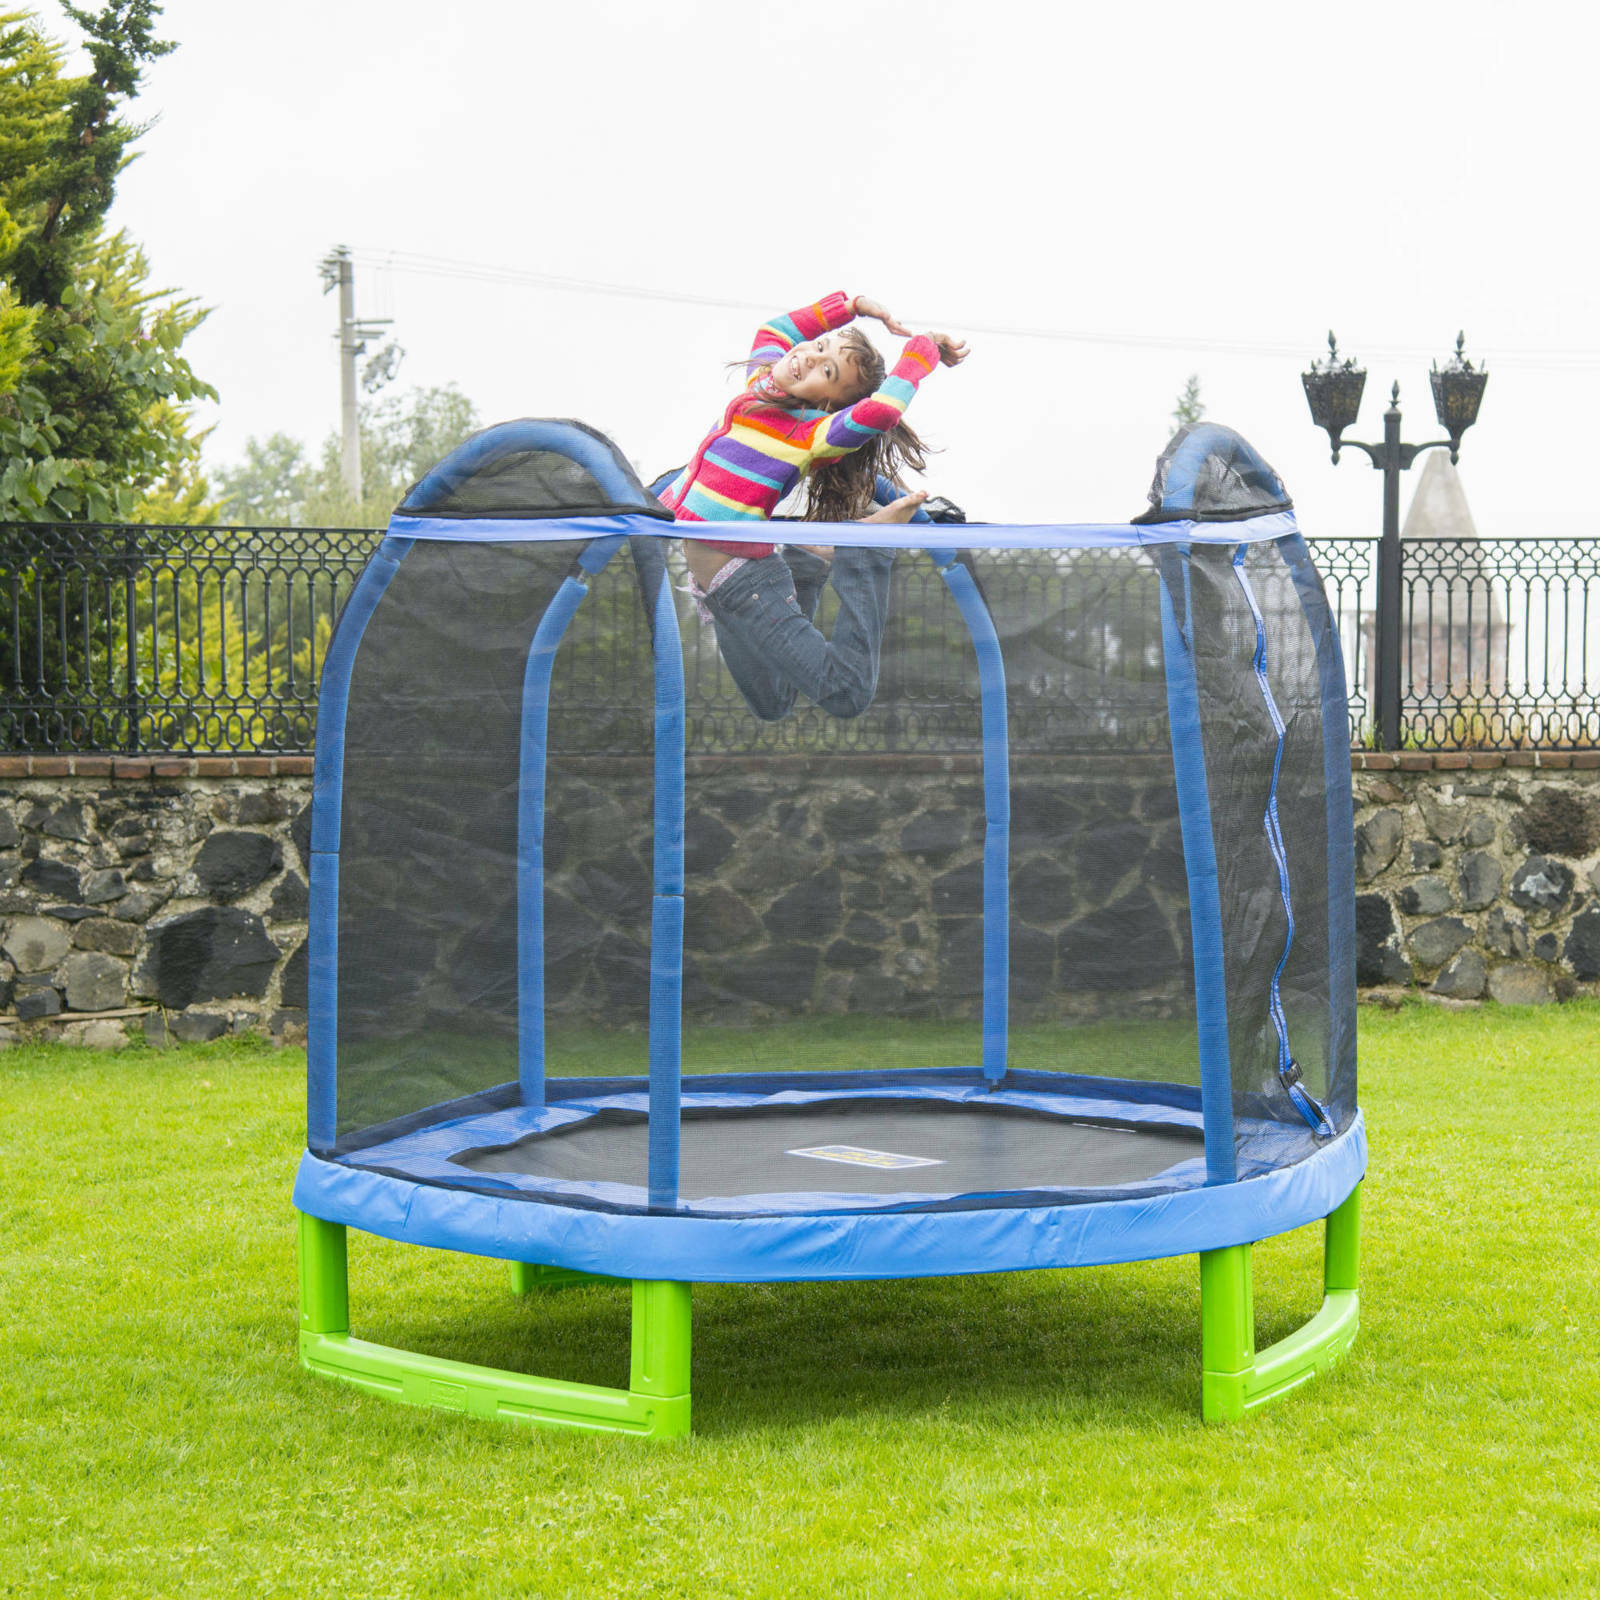 Trampoline Parts Center Coupon Code: Outdoor Trampoline Bouncer For Kids With Net 7 Ft Hexagon